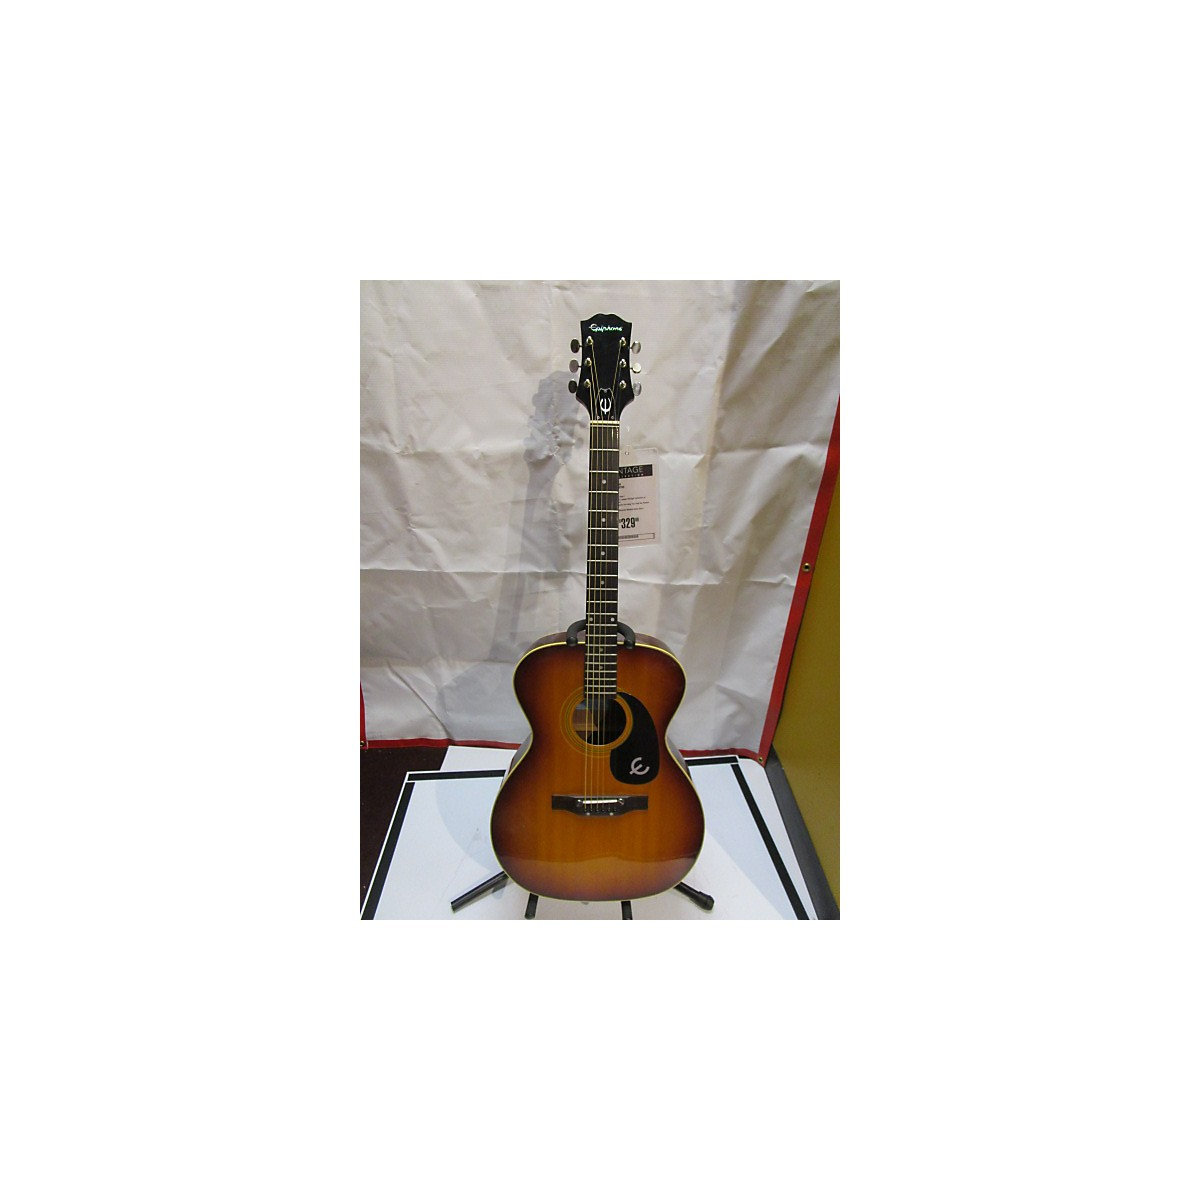 Epiphone 1970s FT130 Acoustic Guitar